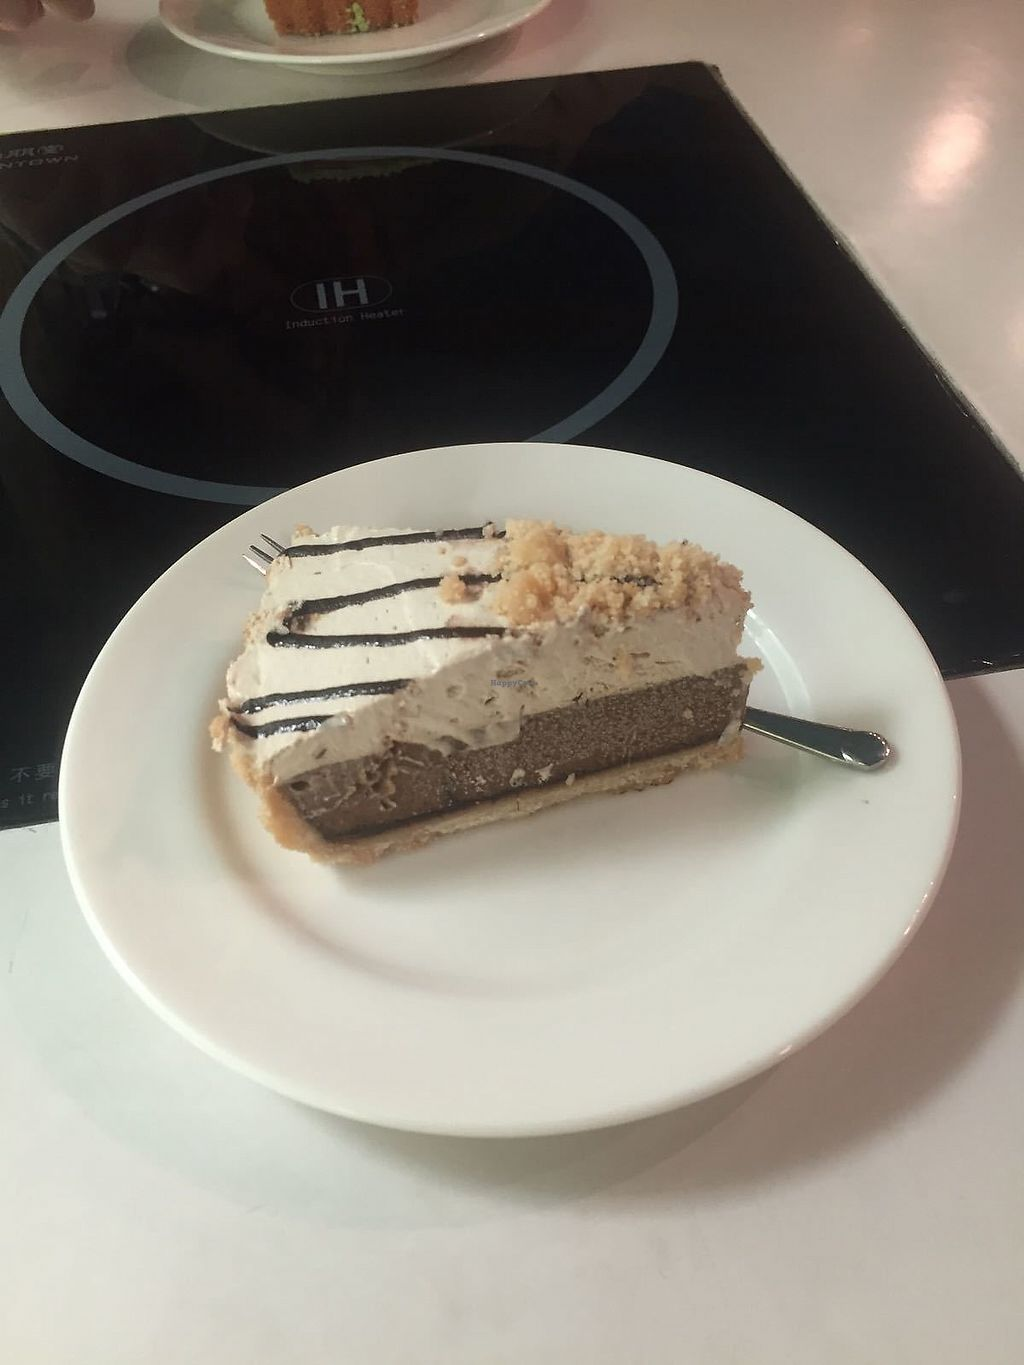 """Photo of Loving Hut - Guangfu South Rd  by <a href=""""/members/profile/FlokiTheCat"""">FlokiTheCat</a> <br/>Coffee ice cream pie <br/> July 29, 2017  - <a href='/contact/abuse/image/17062/286108'>Report</a>"""